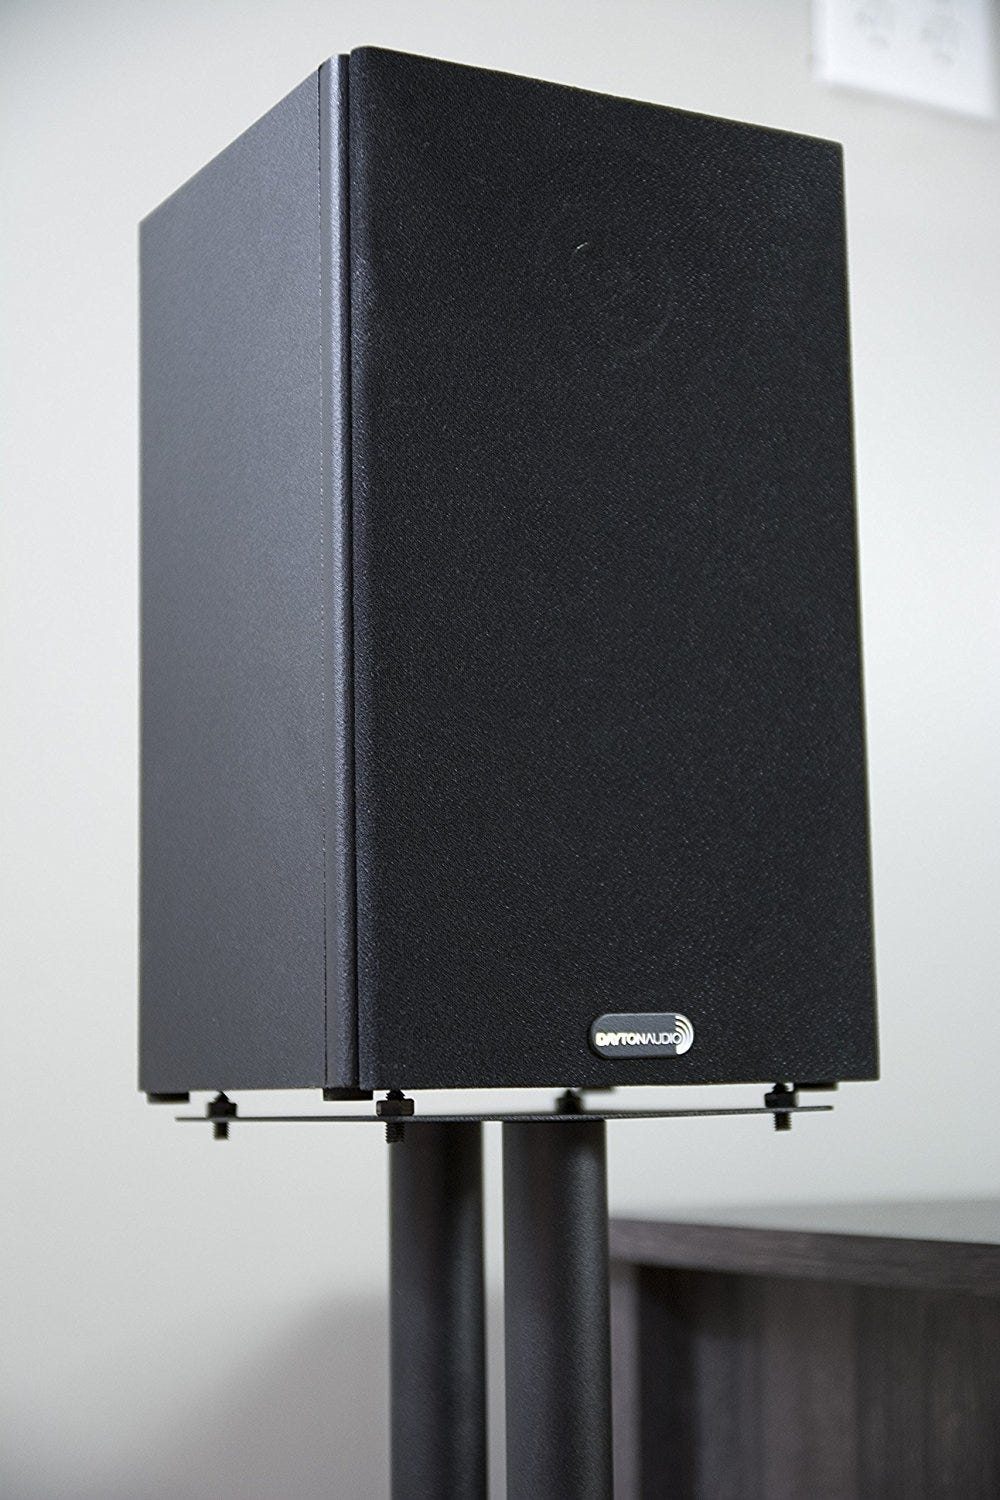 Supported By 2 Steel Pillars These Stands Are Sturdy While Maintaining A Low Profile